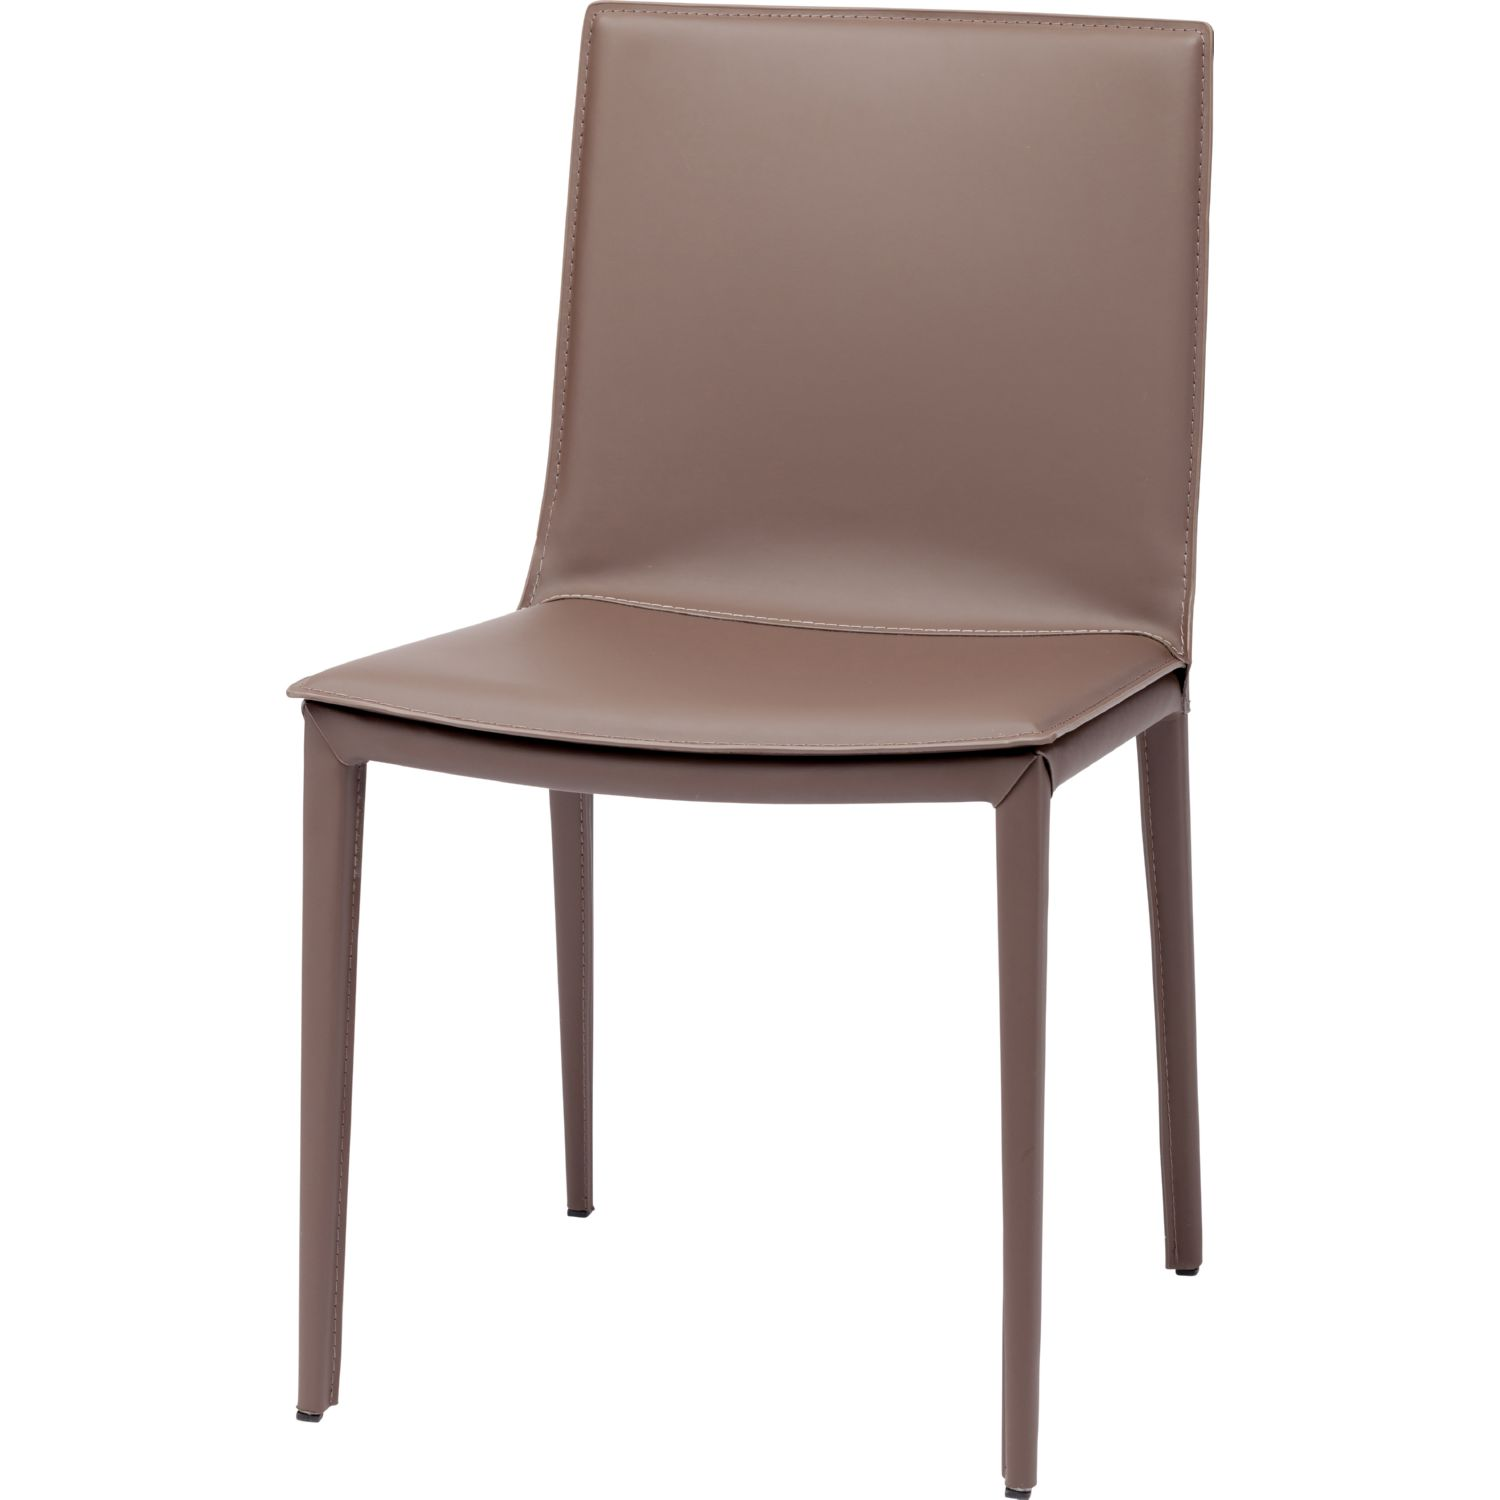 Nuevo Modern Furniture HGND103 Palma Dining Chair in Mink Leather